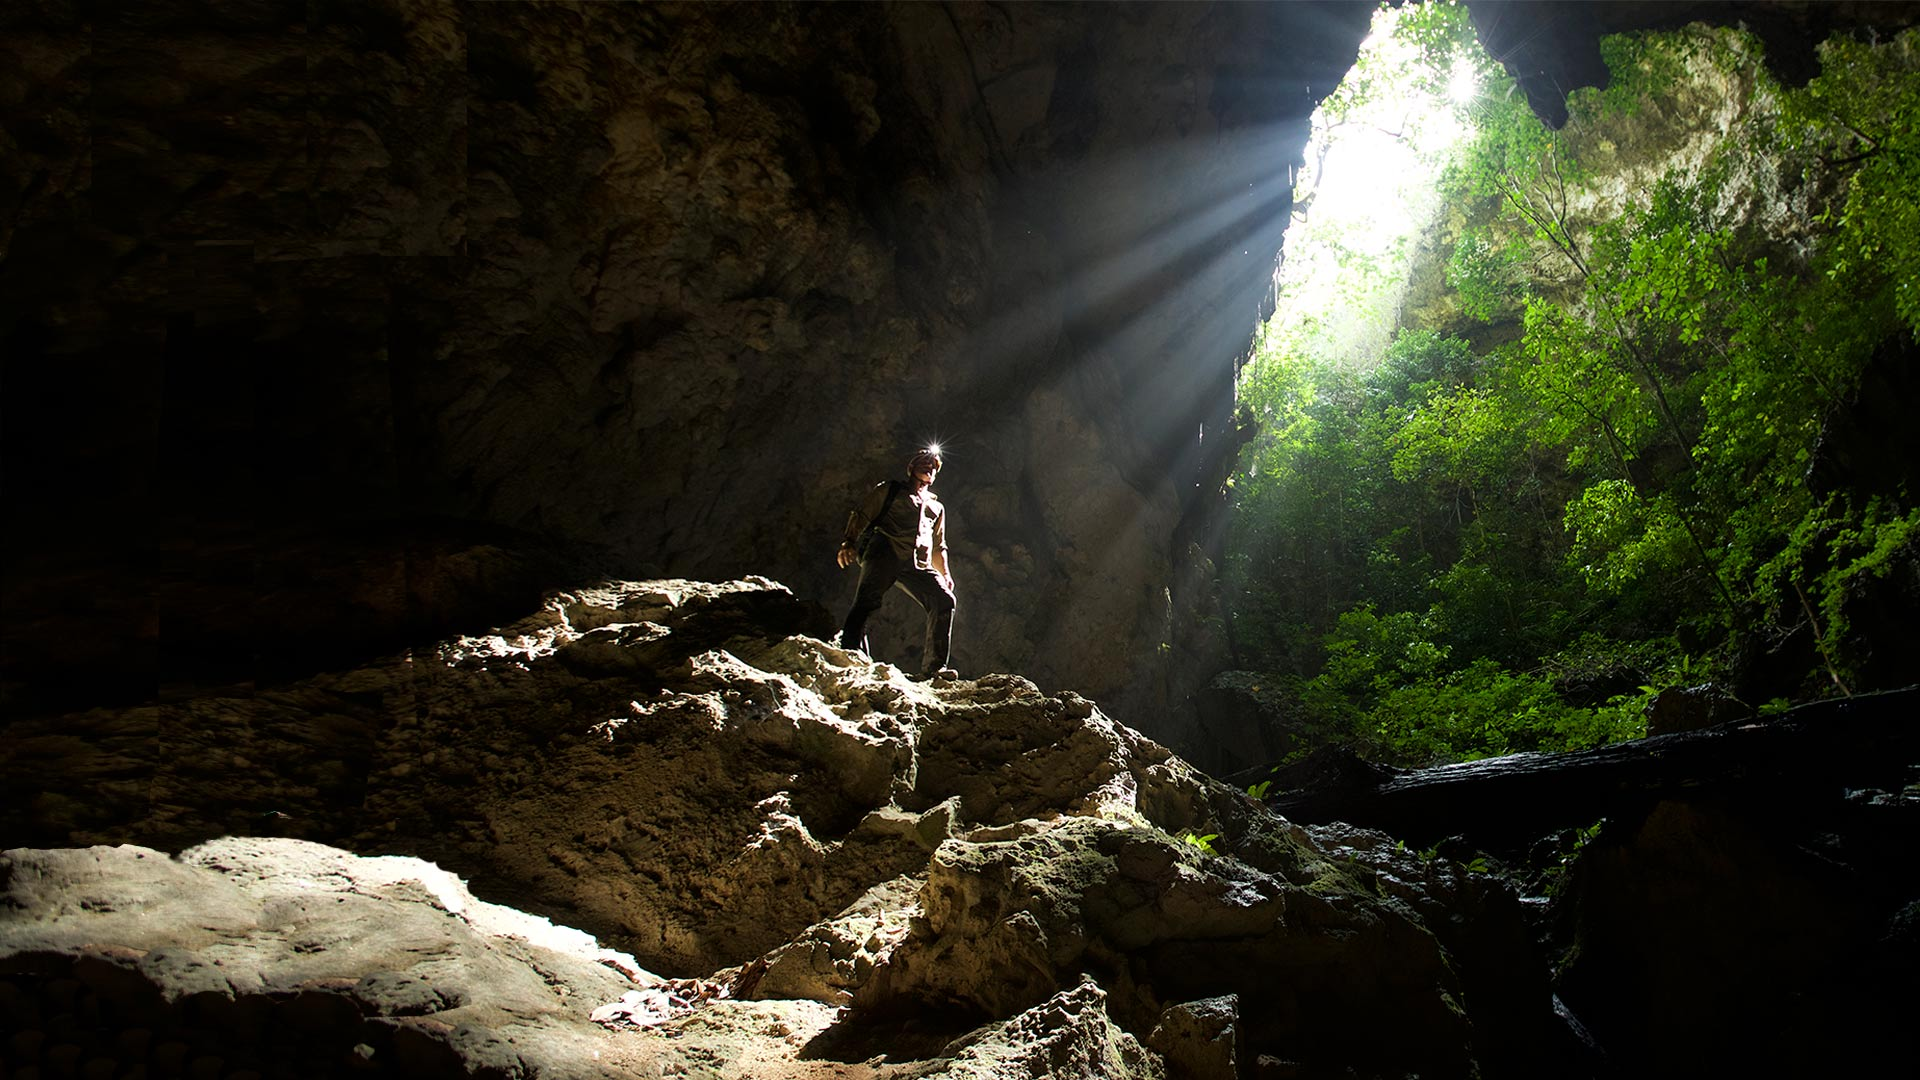 Steve stands under a colapsed doline inside Tebo Cave which is home to the resurgence of the Marang River after it has completed its journey from the East, all the way under the Gergaji Karst Block.